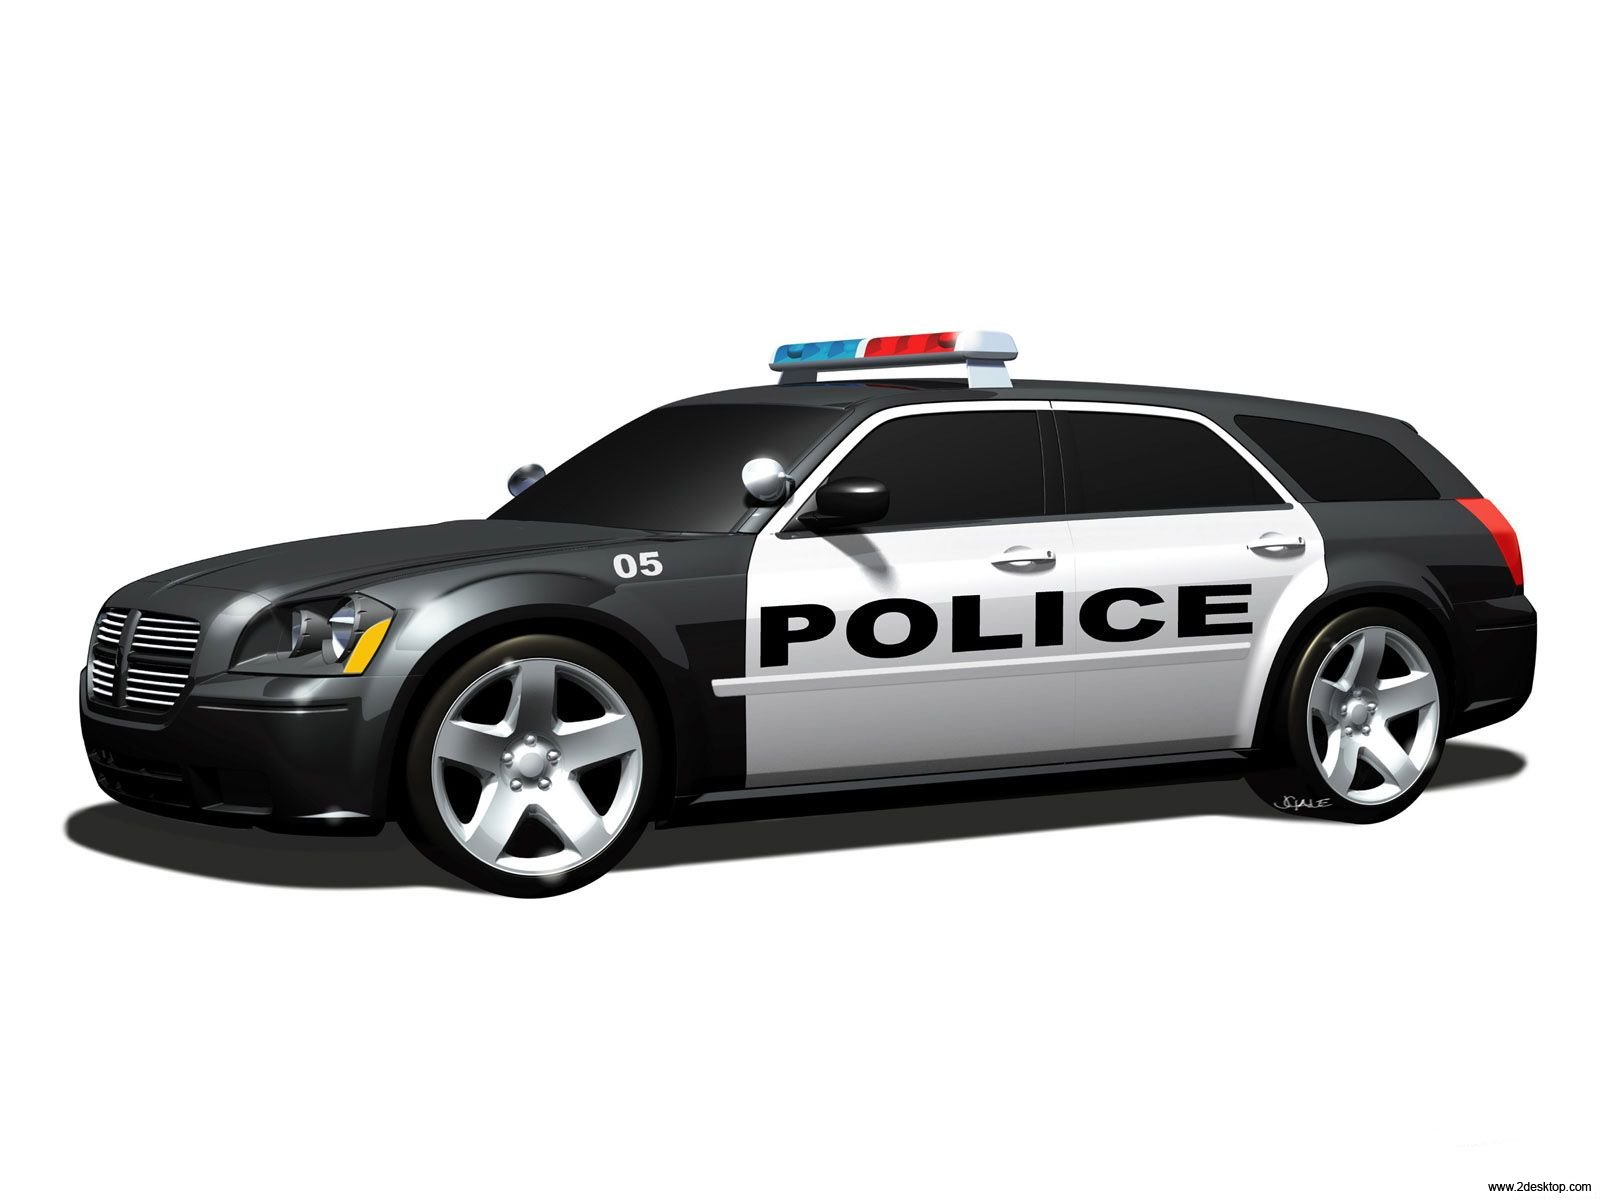 police car free images at vector clip art. Black Bedroom Furniture Sets. Home Design Ideas